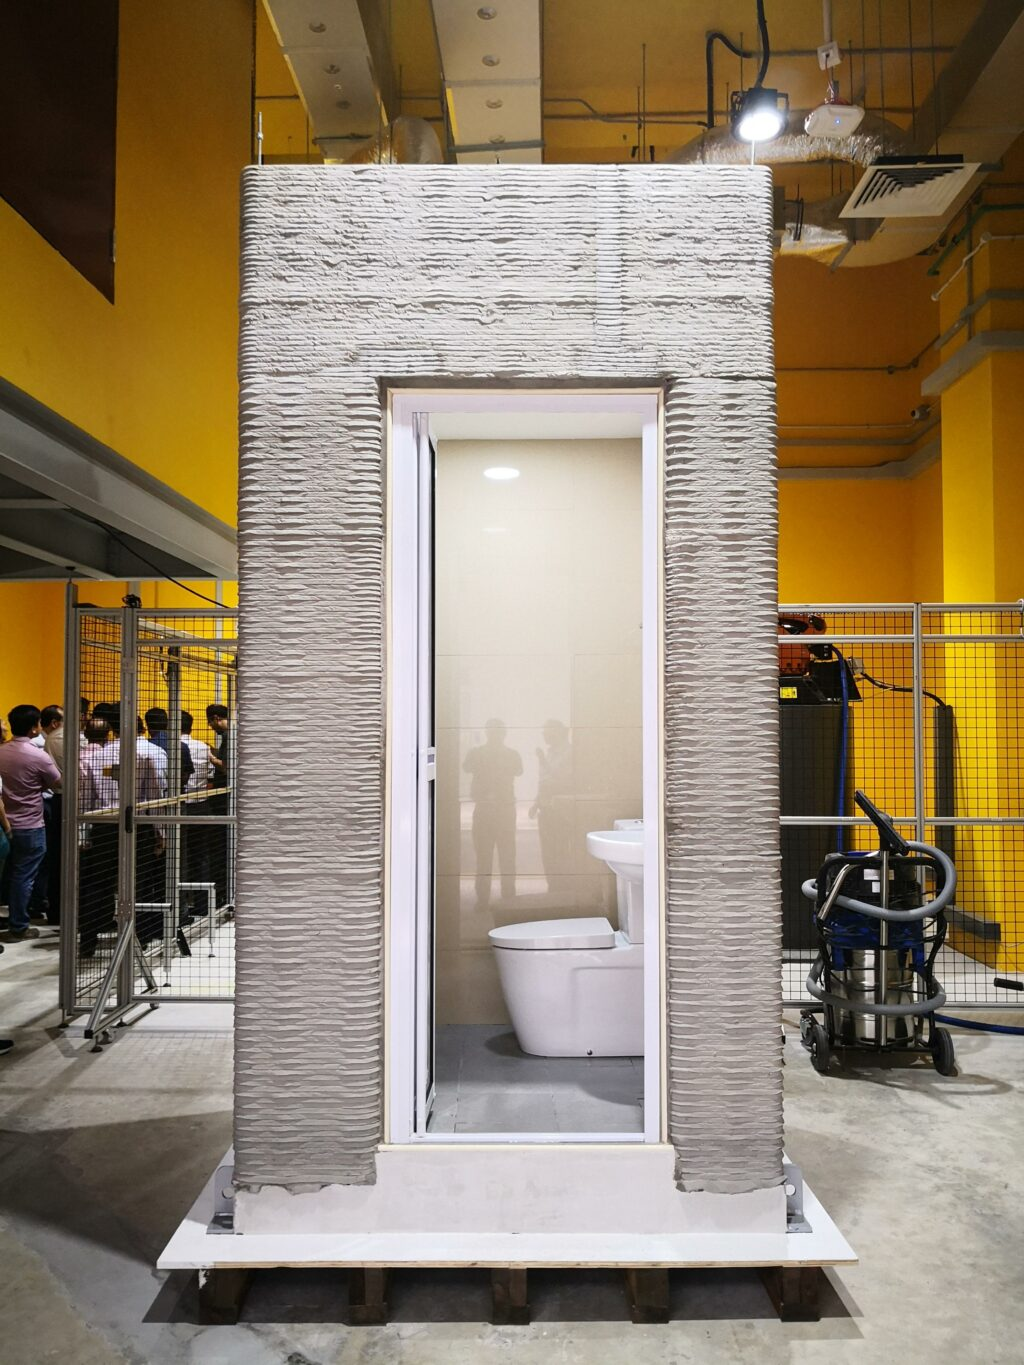 Bathroom Units Developed by NTU in Record Time with Concrete 3D Printer